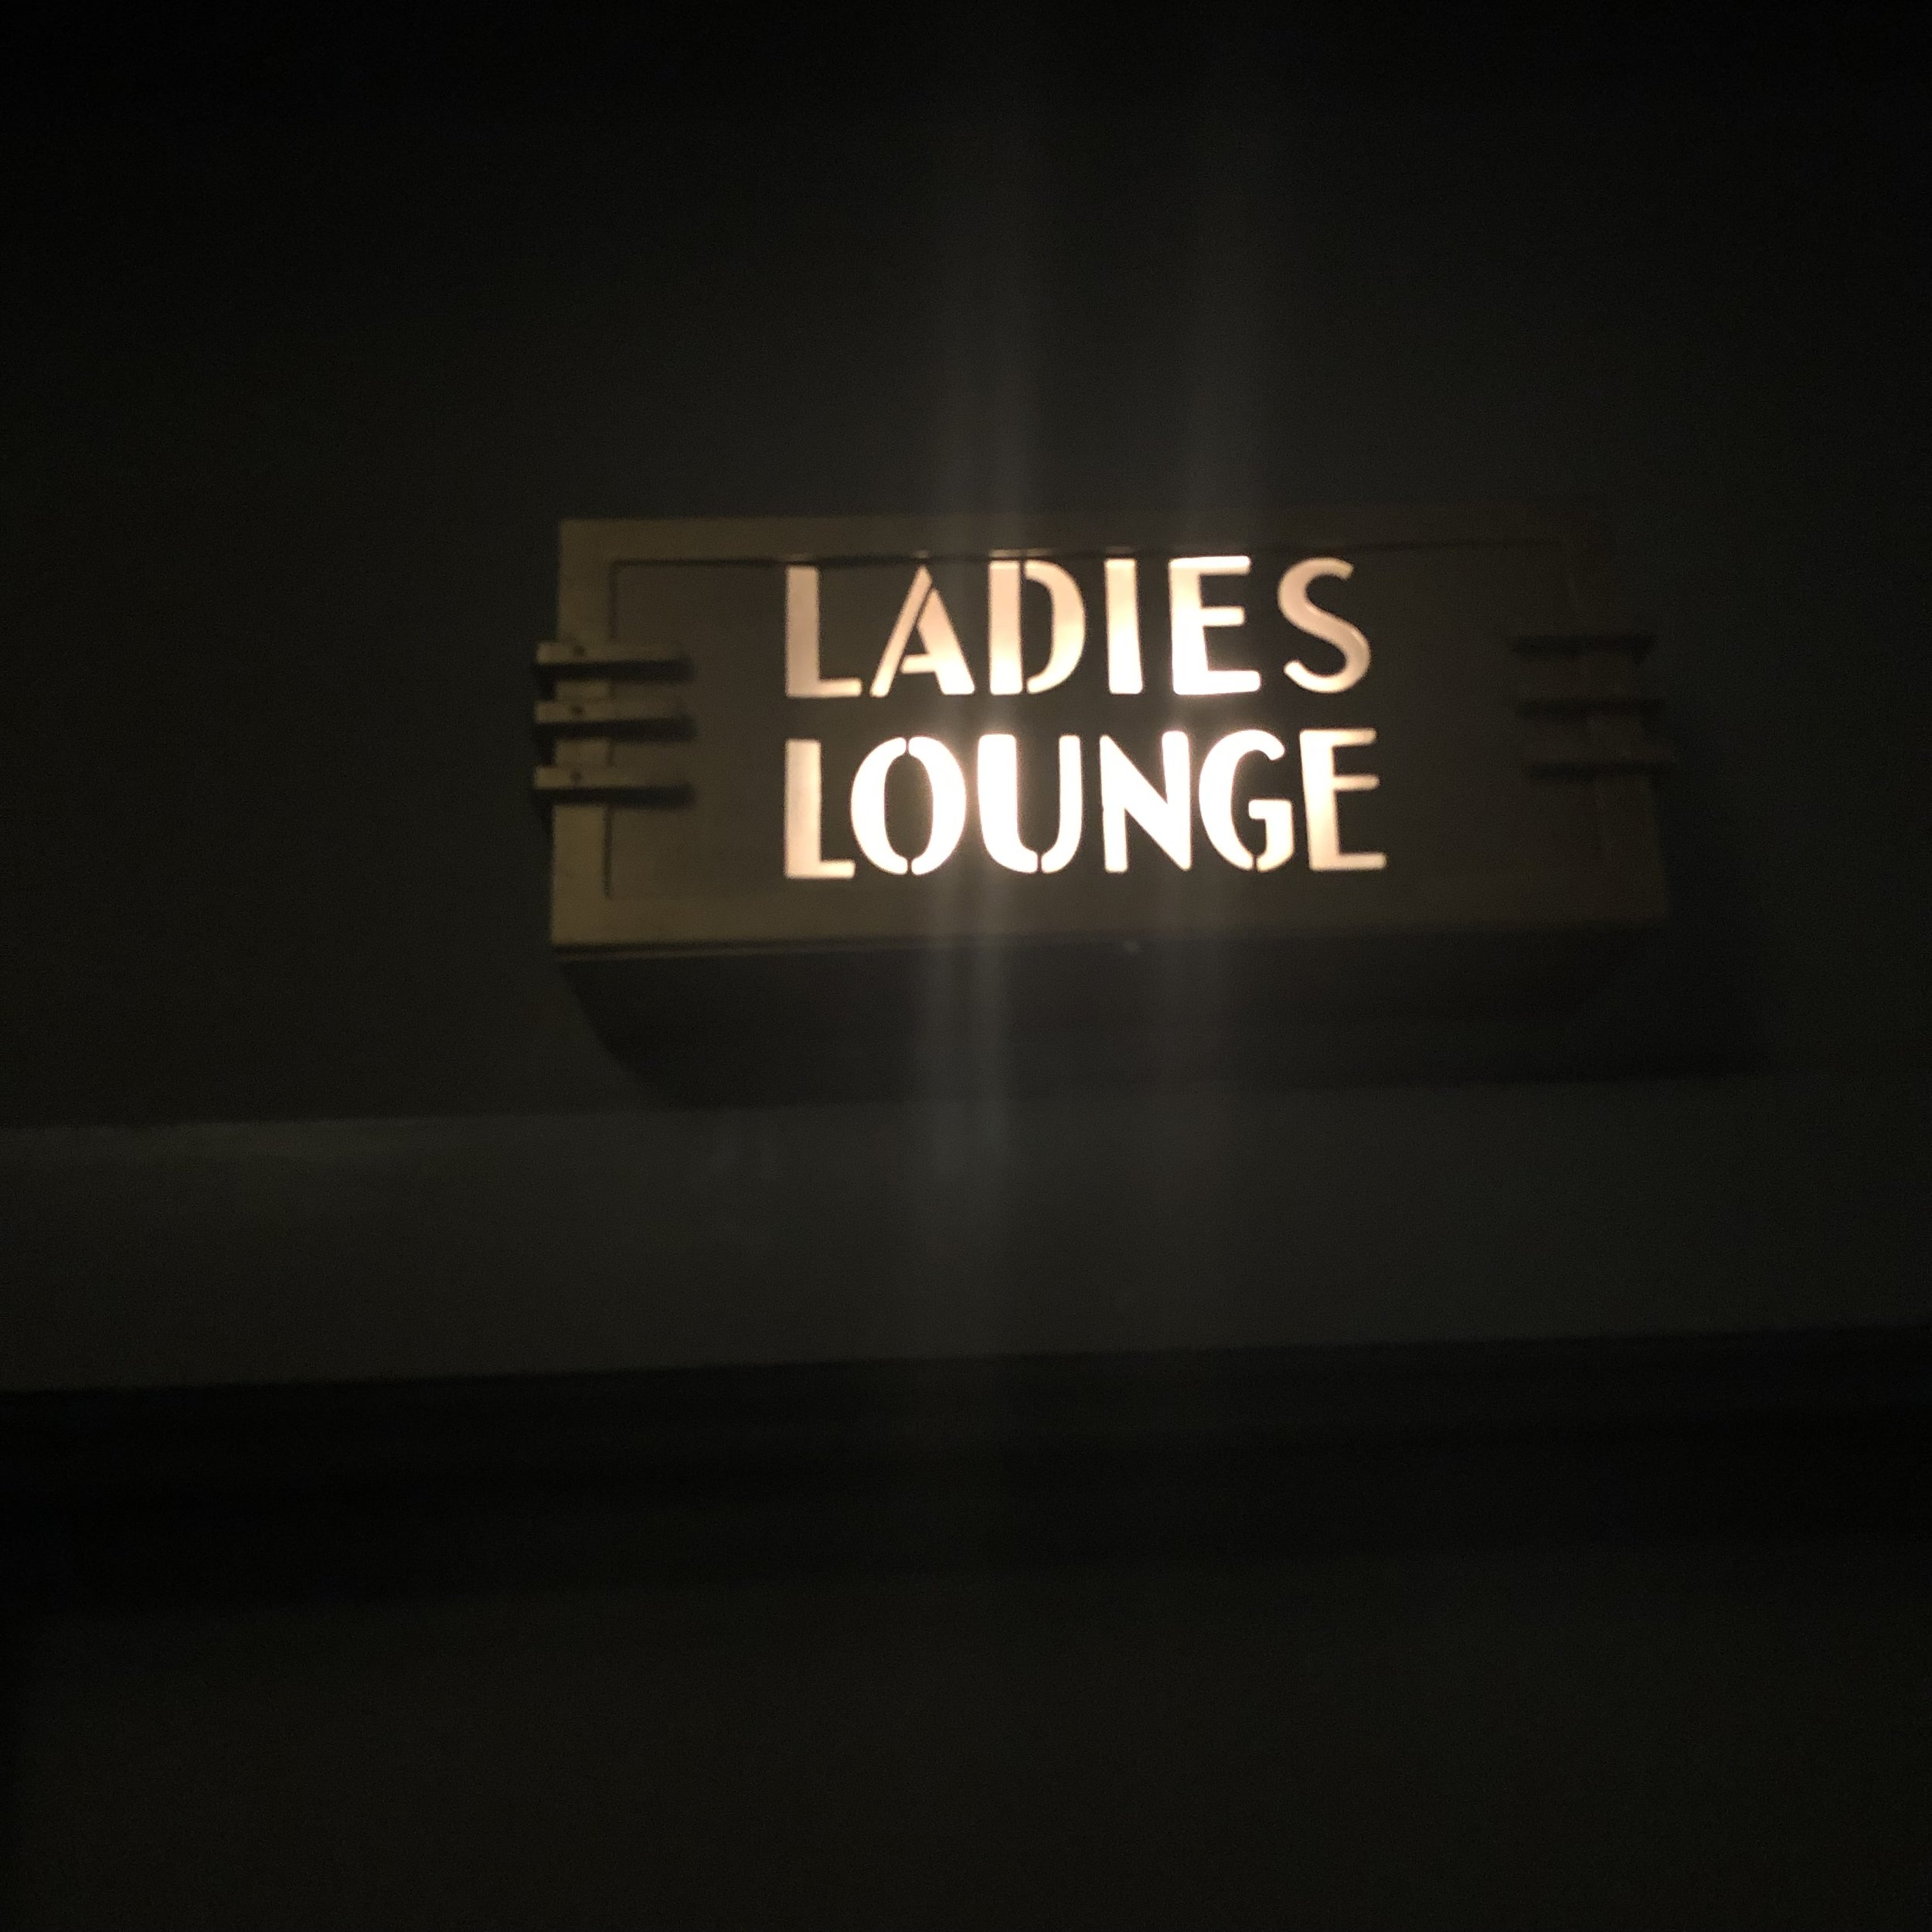 beacon theater ladies lounge.jpg